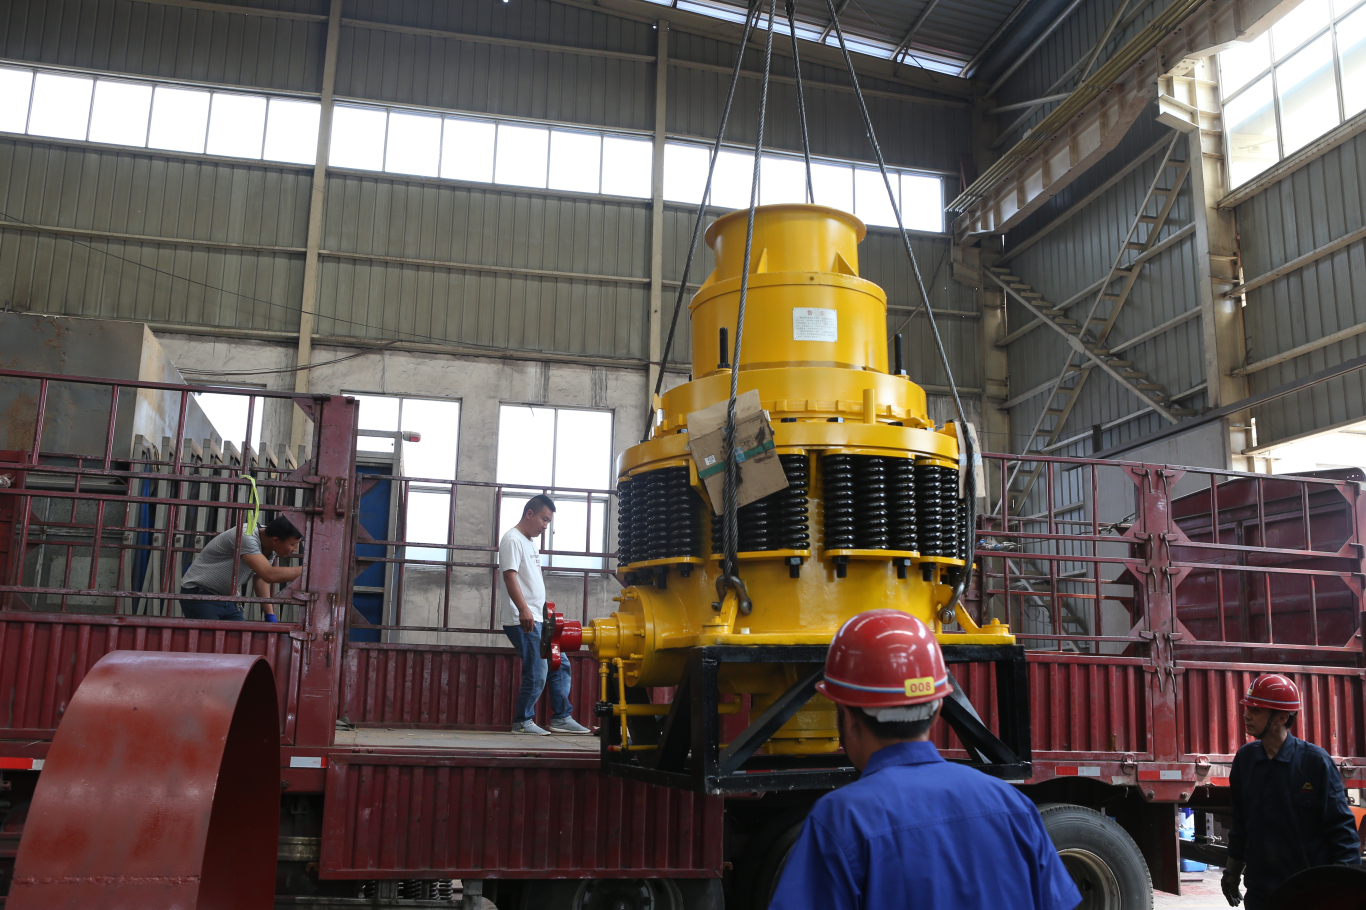 The reasons of symons cone crusher crushing chamber wear